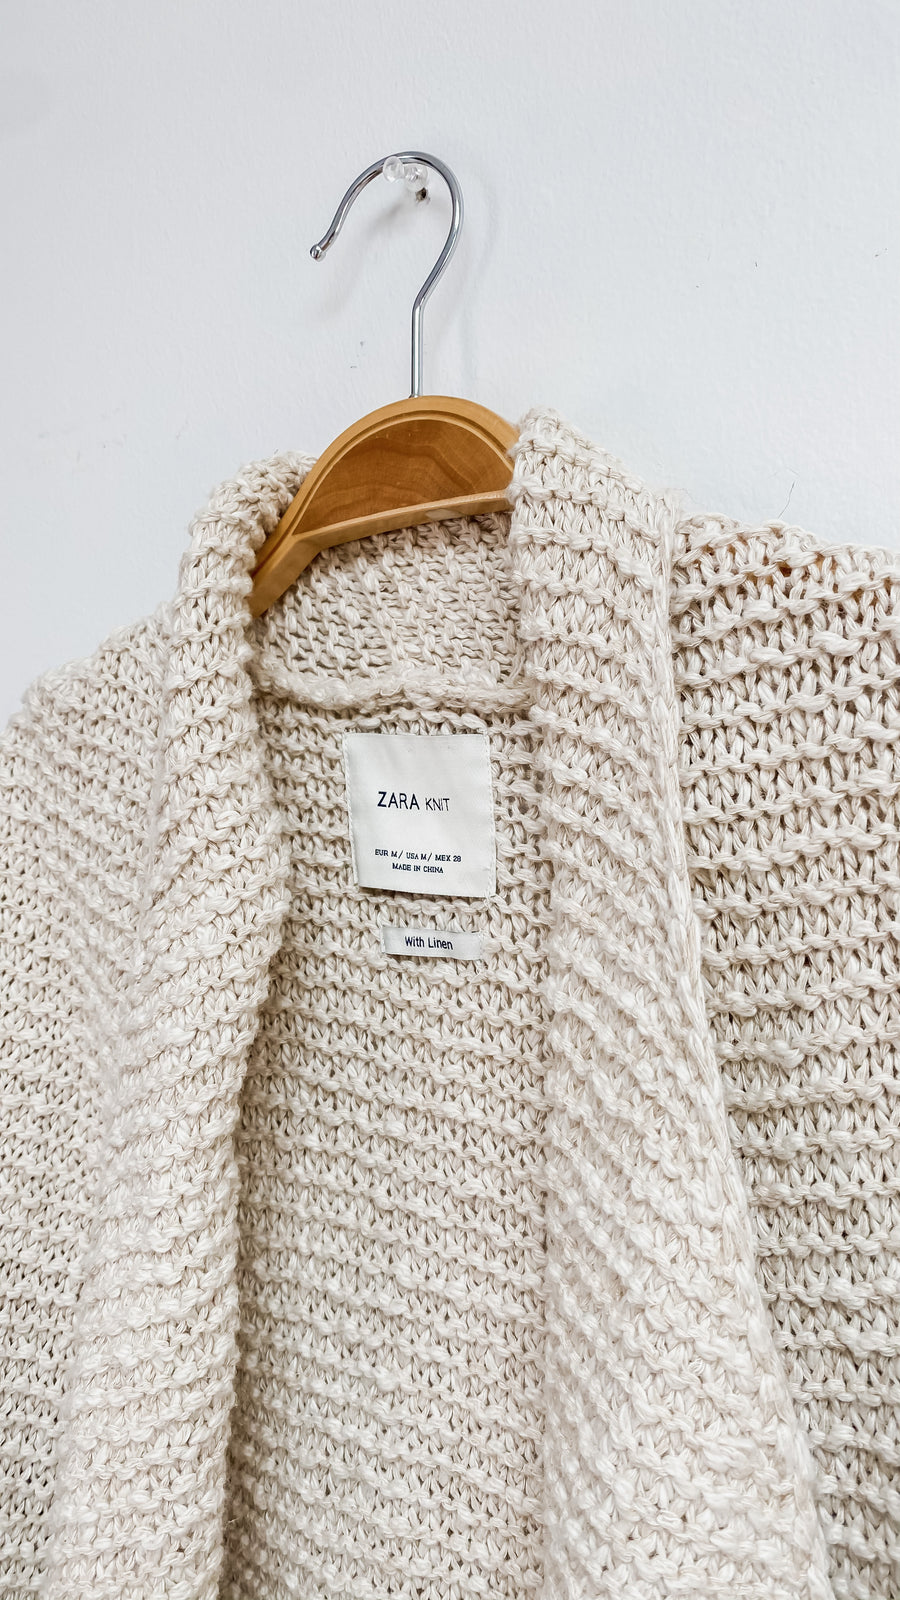 Zara Cotton & Linen Oversized Cardigan (M/L/XL)